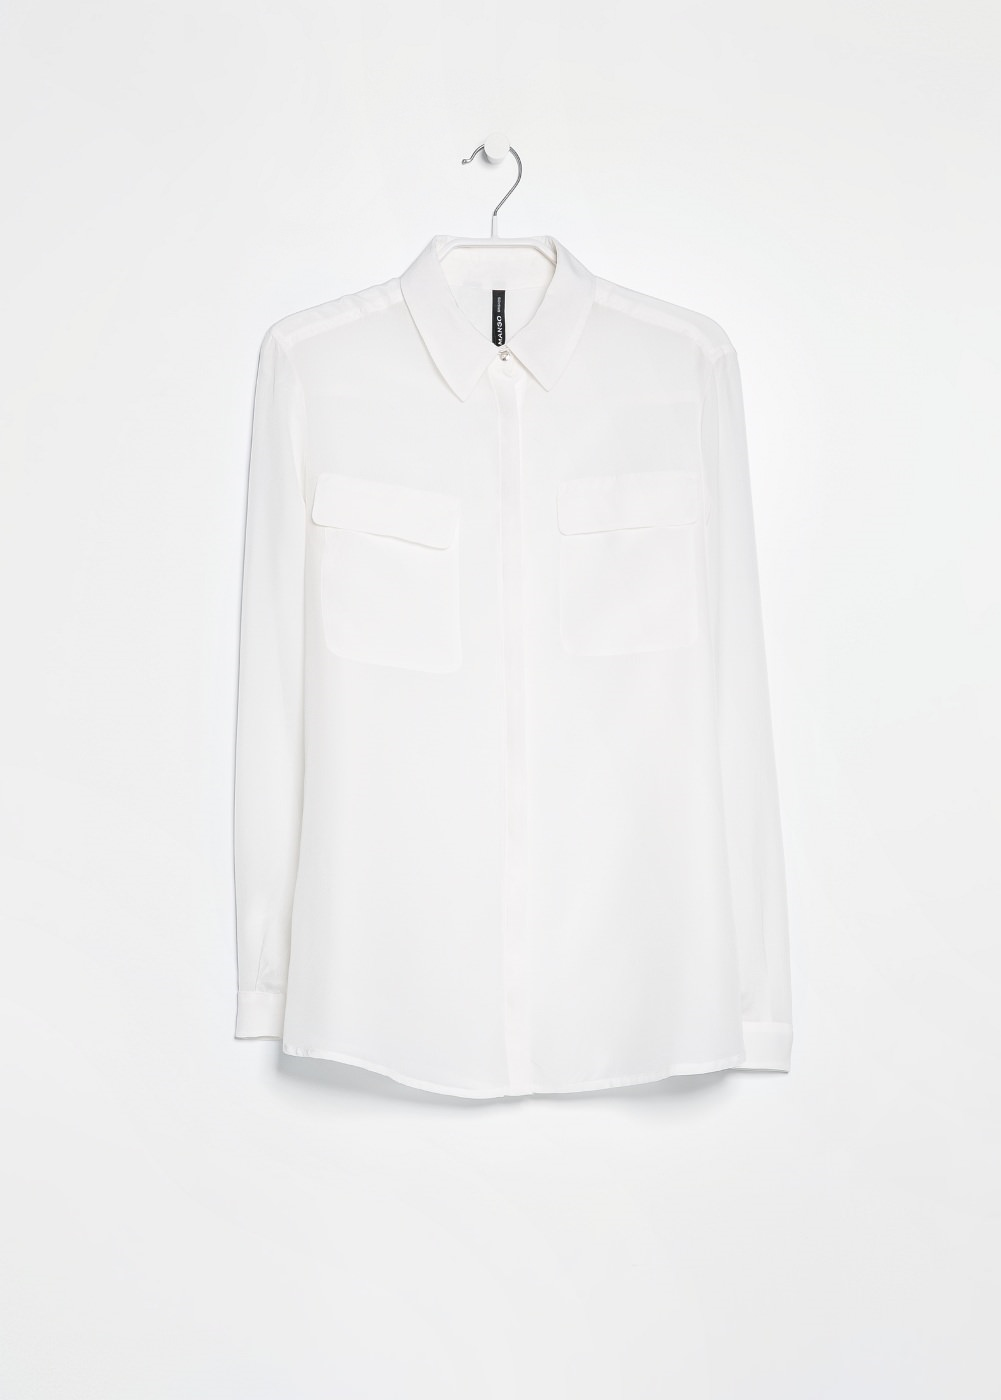 http://shop.mango.com/GB/p0/women/clothing/blouses-and-shirts/silk-shirt/?id=23013502_OW&n=1&s=prendas.blusas&ident=0__0_1405266769968&ts=1405266769968